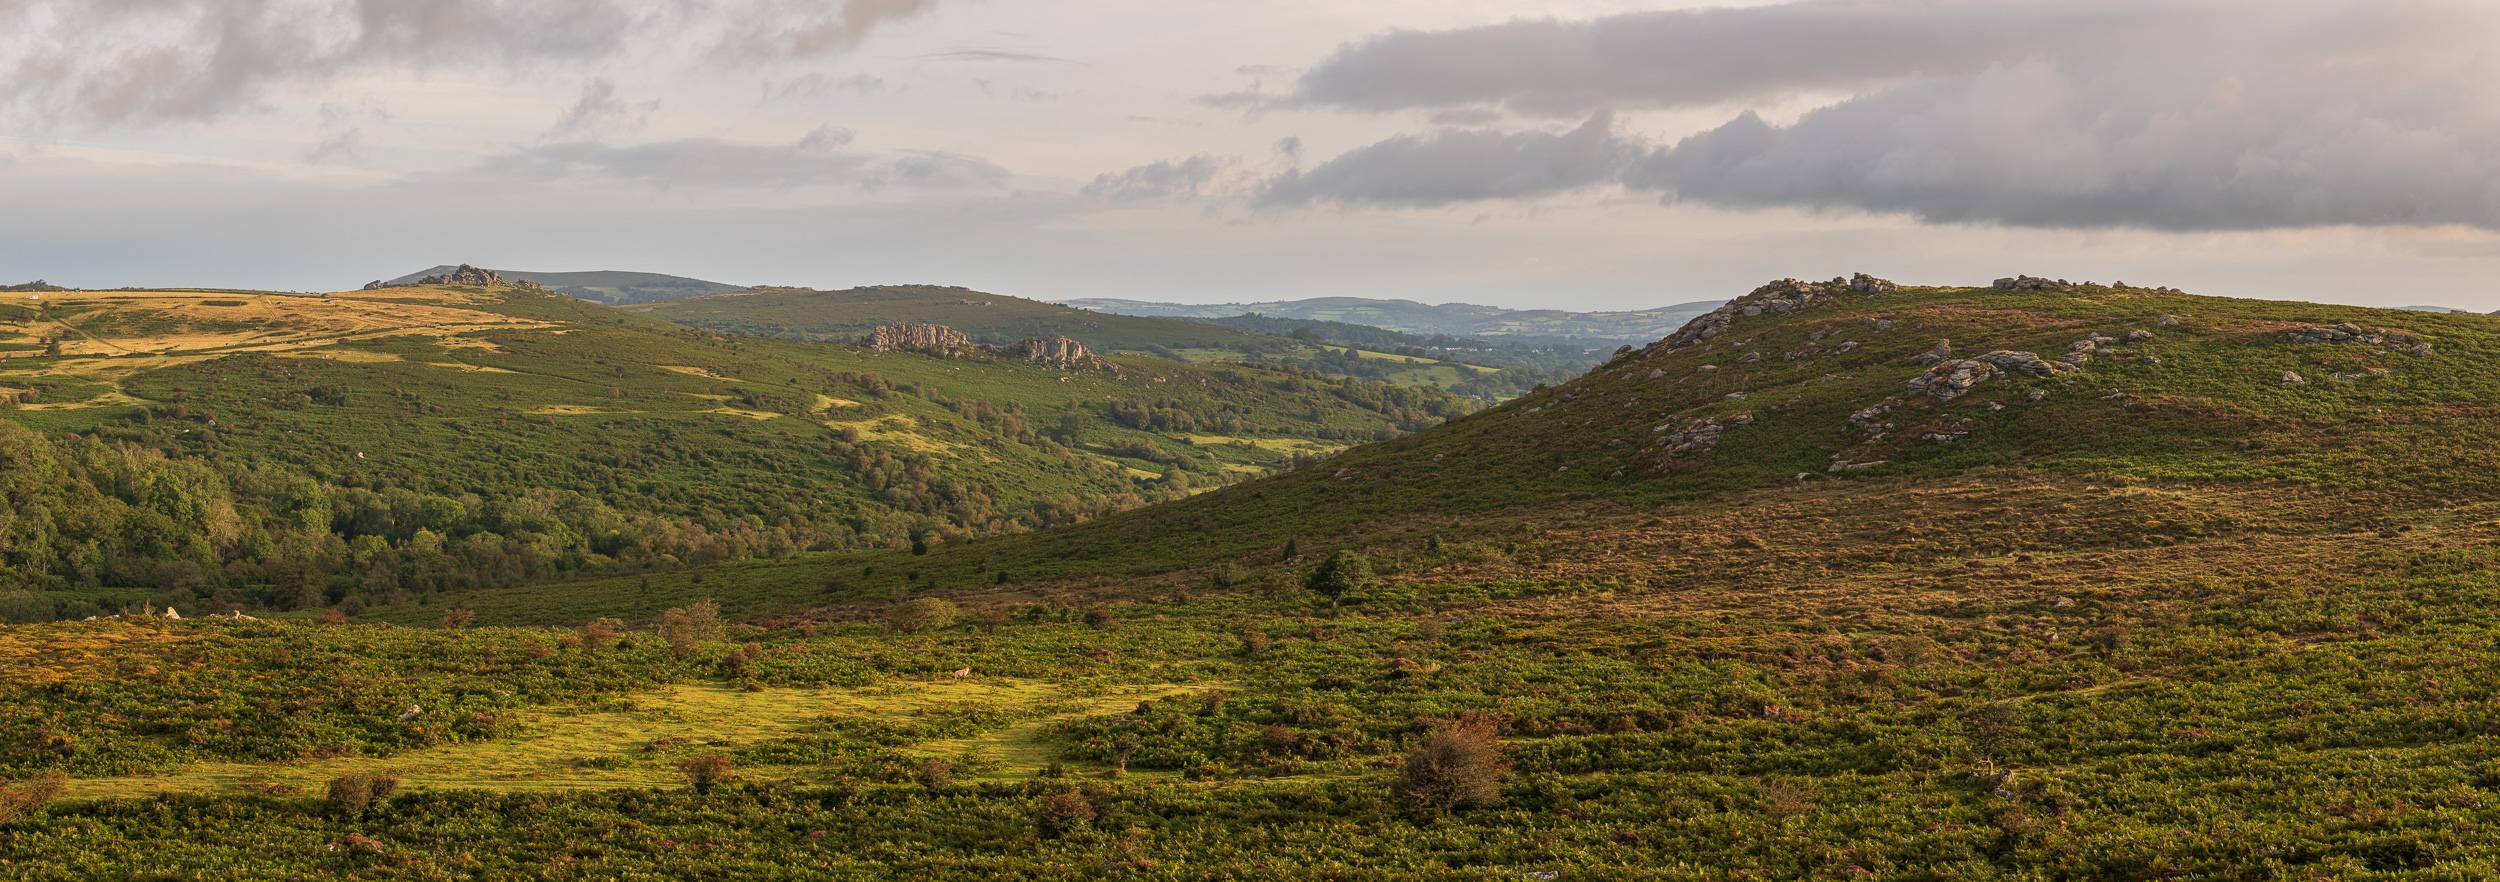 Houndtor, Greator Rocks and Holwell Tor Panorama, Dartmoor, Devon  - Nikon D850, Nikkor 24-70 mm f/2.8 at 70 mm, f/8, 1/40th sec at ISO 64, 8 image panoramic cropped to 6:17.